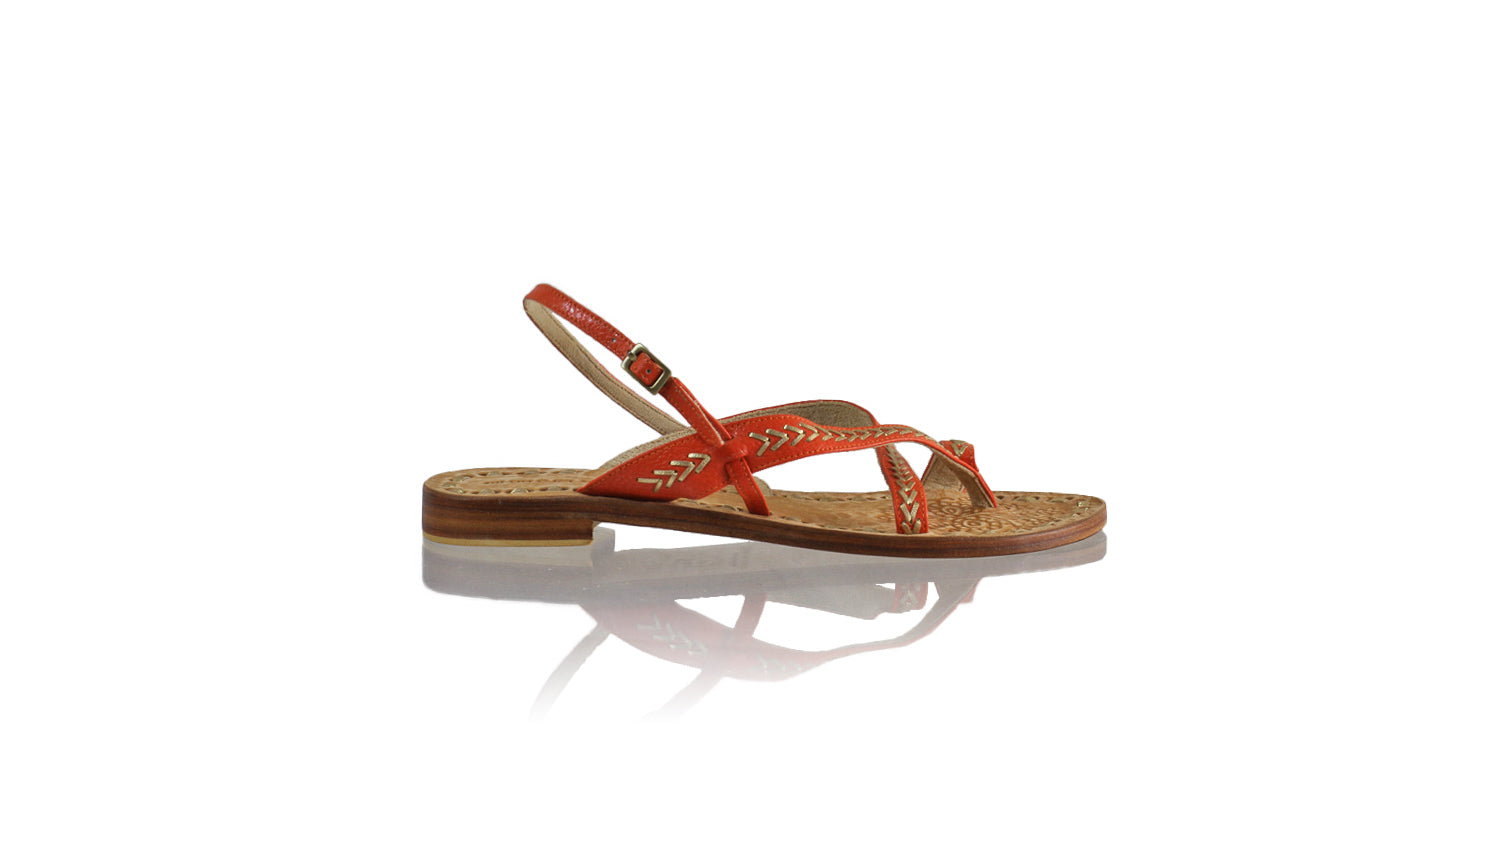 Leather-shoes-Romance 20mm Flat - Orange BKK & Gold-sandals flat-NILUH DJELANTIK-NILUH DJELANTIK